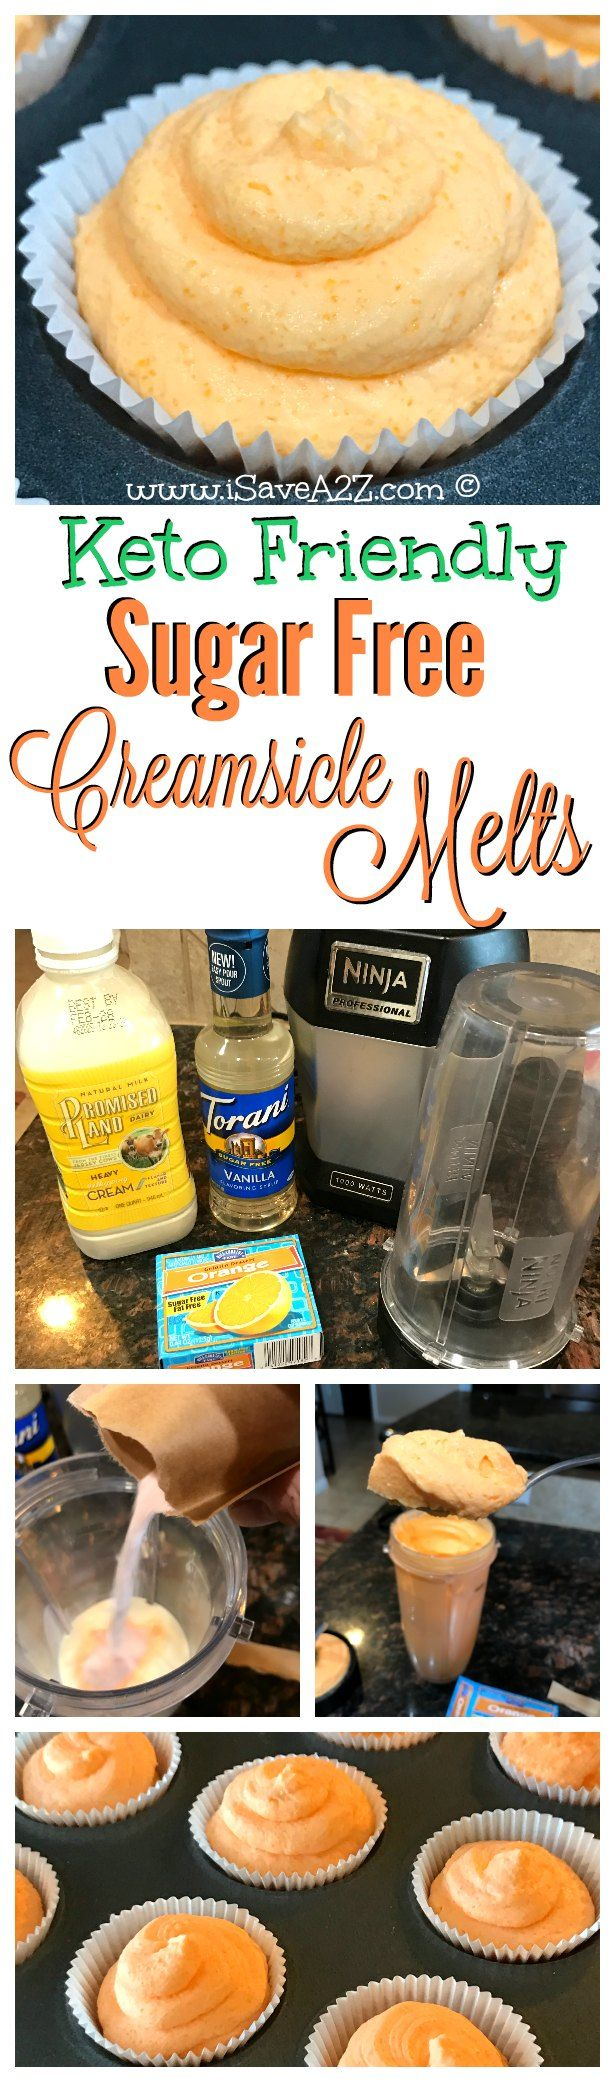 These keto friendly fat bombs taste just like a Creamsicle Popsicle!!!!  OMG!!!!  SO GOOD!